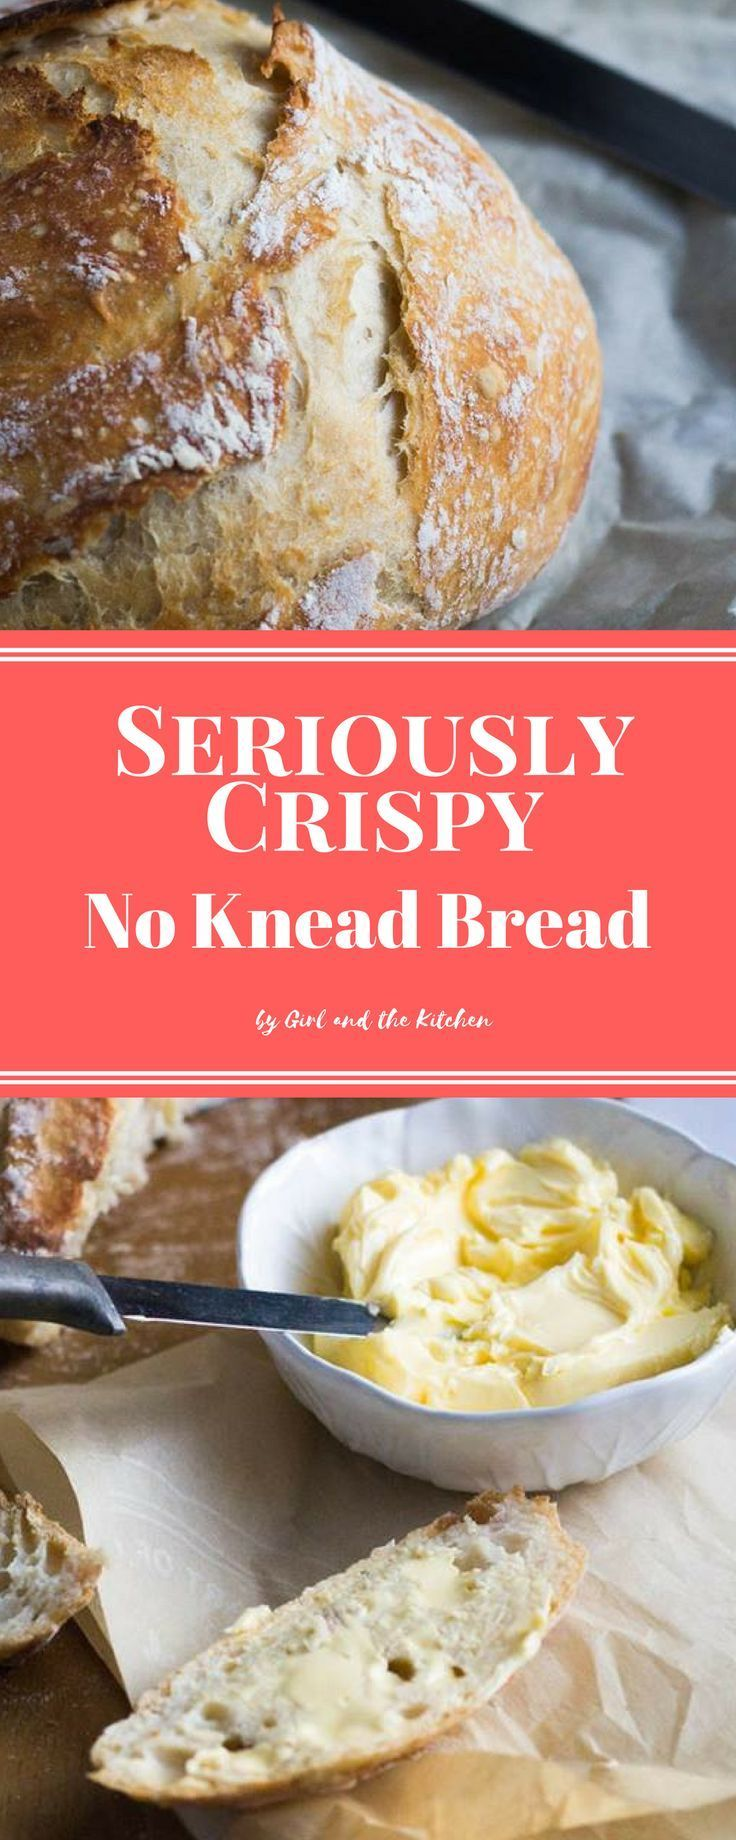 Forget getting out the mixer or thebread maker in order to achieve perfect homemade bread! This seriously crispy no knead bread requires no mixer, no dough hook nor any time to knead by hand! Magic happens quite simply with just a fewpantry ingredient